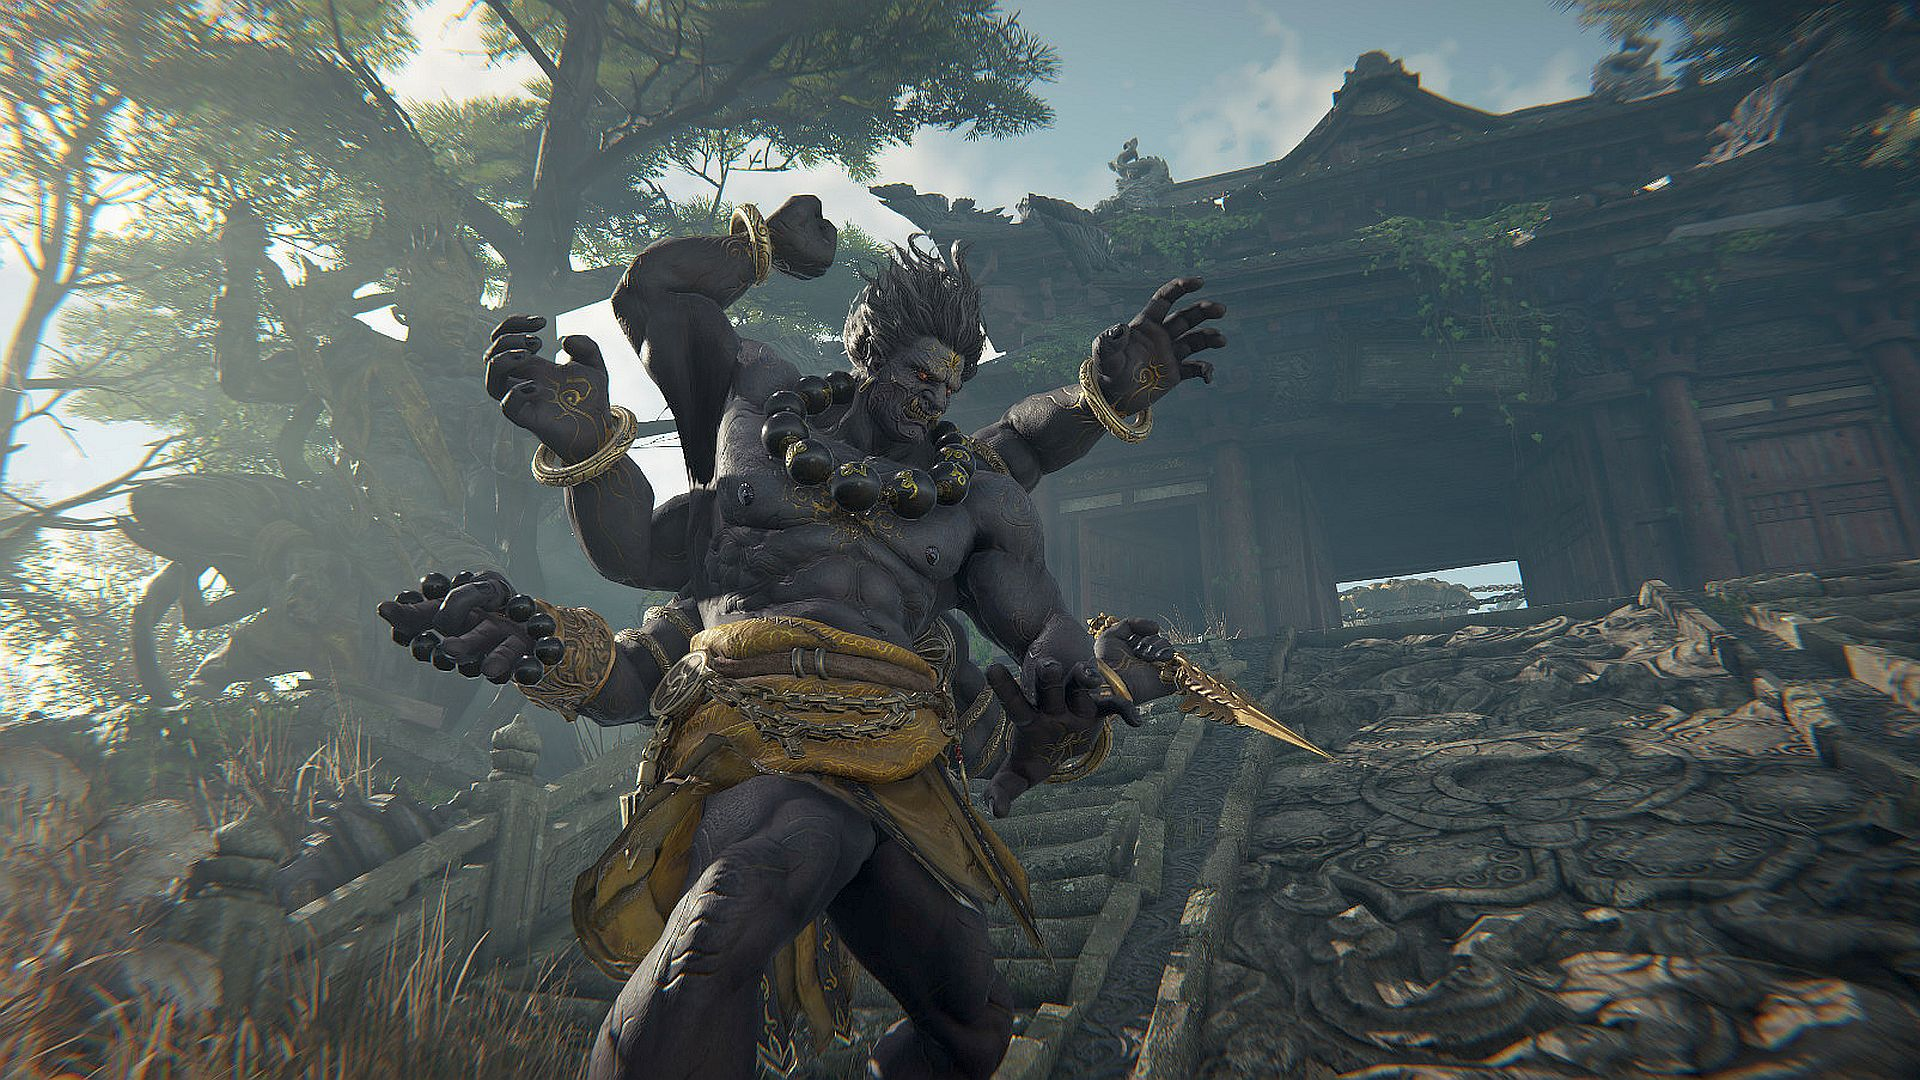 Naraka: Bladepoint has a free demo on Steam, and it's extremely popular